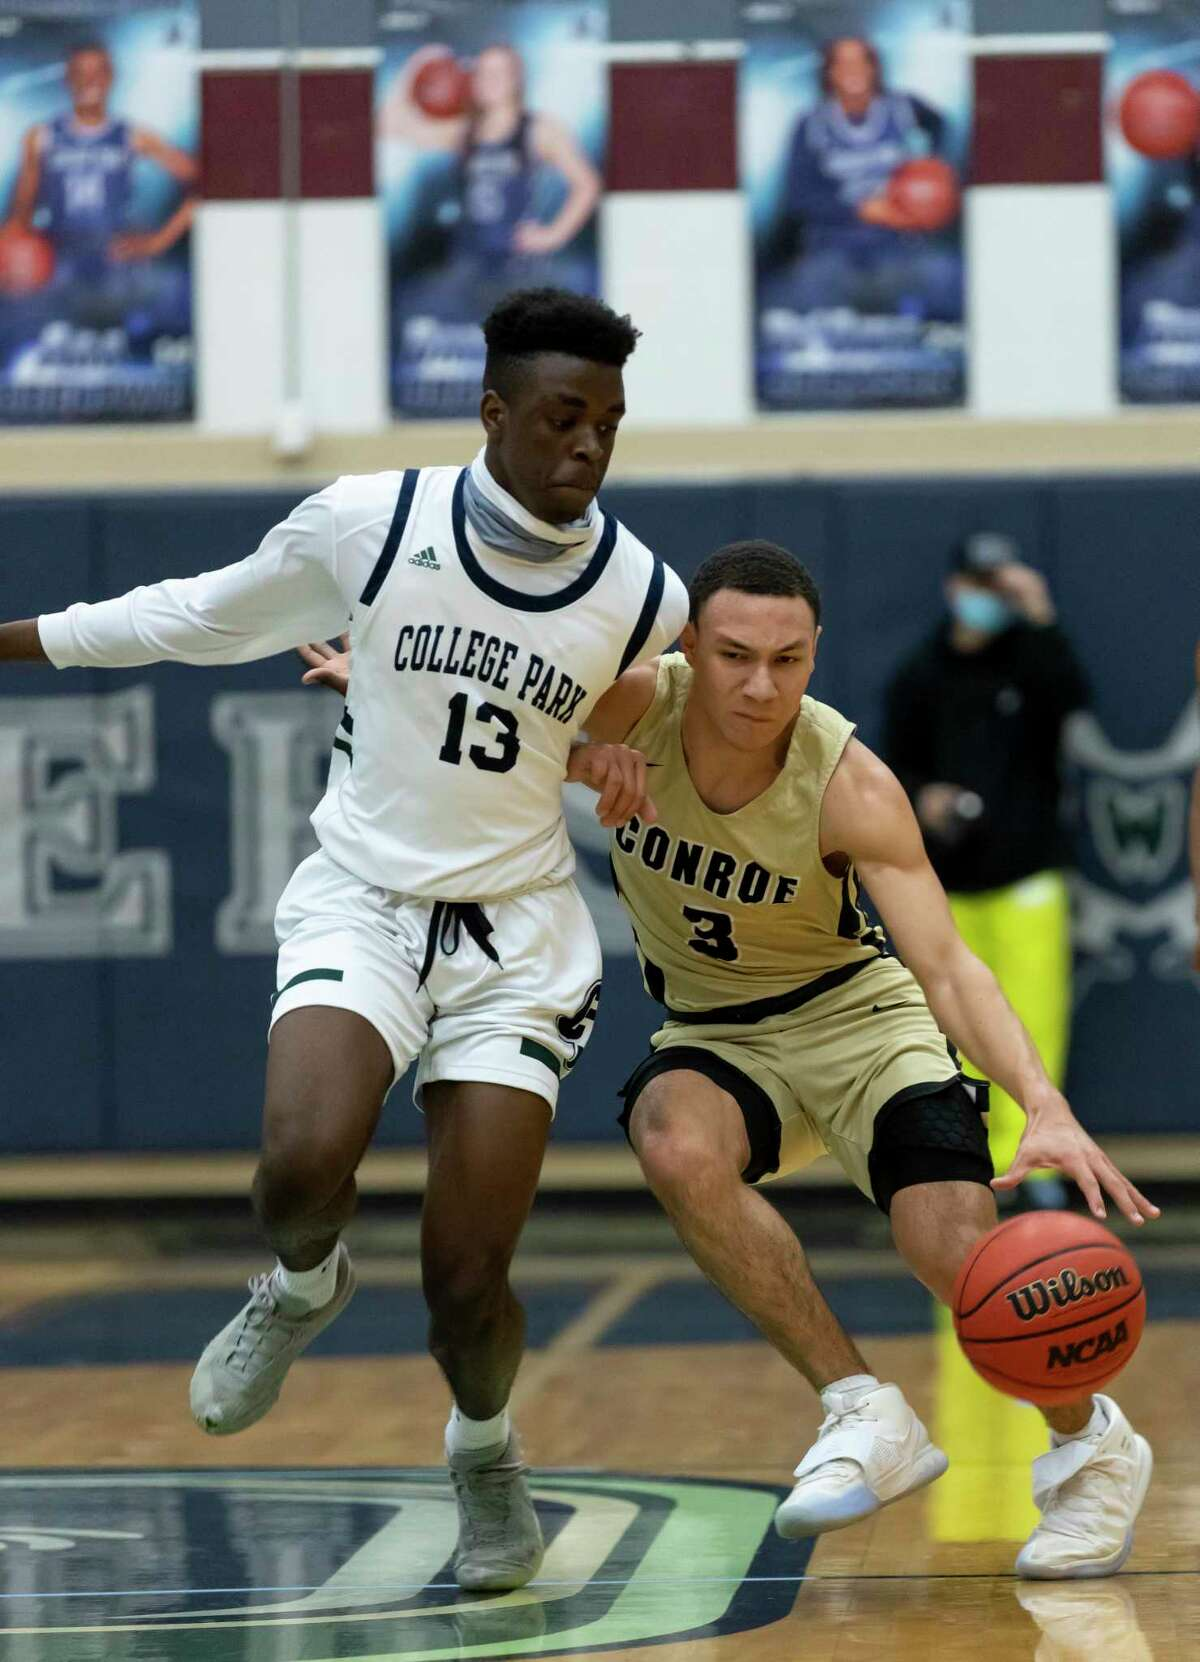 Conroe Mikey Sneed (3) pushes against College Park small forward Ellis Ibizugbe (13) as he drives the ball during the first quarter of a District 13-6A boys basketball game at College Park High School, Tuesday, Dec. 29. 2020, in The Woodlands.